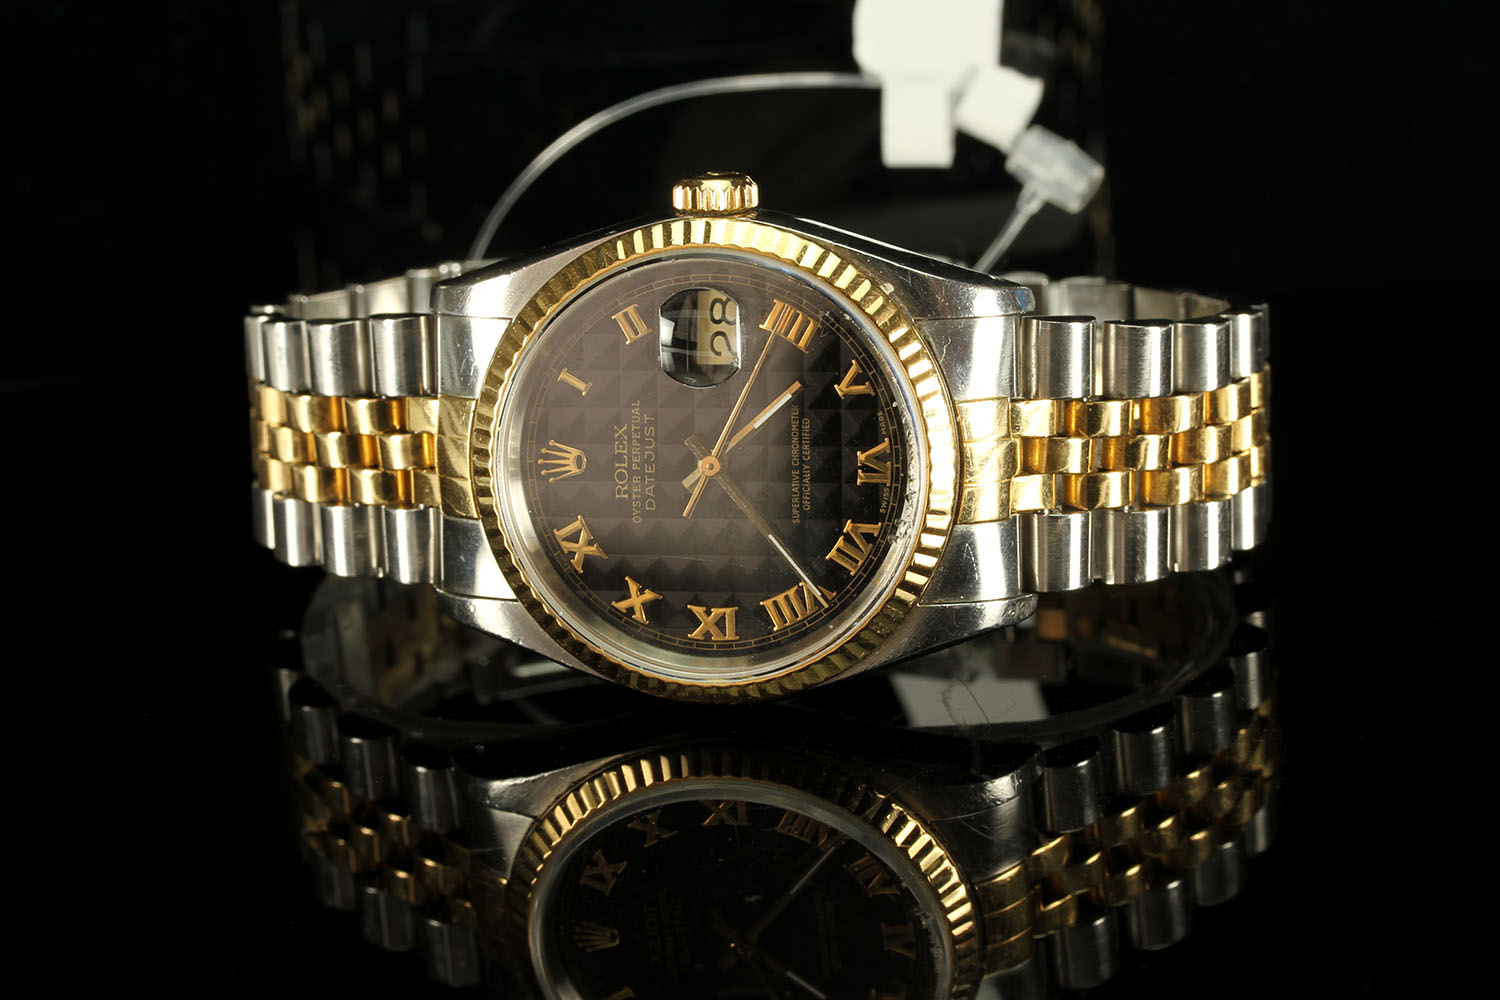 GENTLEMANS ROLEX DATEJUST MODEL 16233, SN X15.... , CIRCA 1991, round, black pyramid dial with - Image 2 of 2